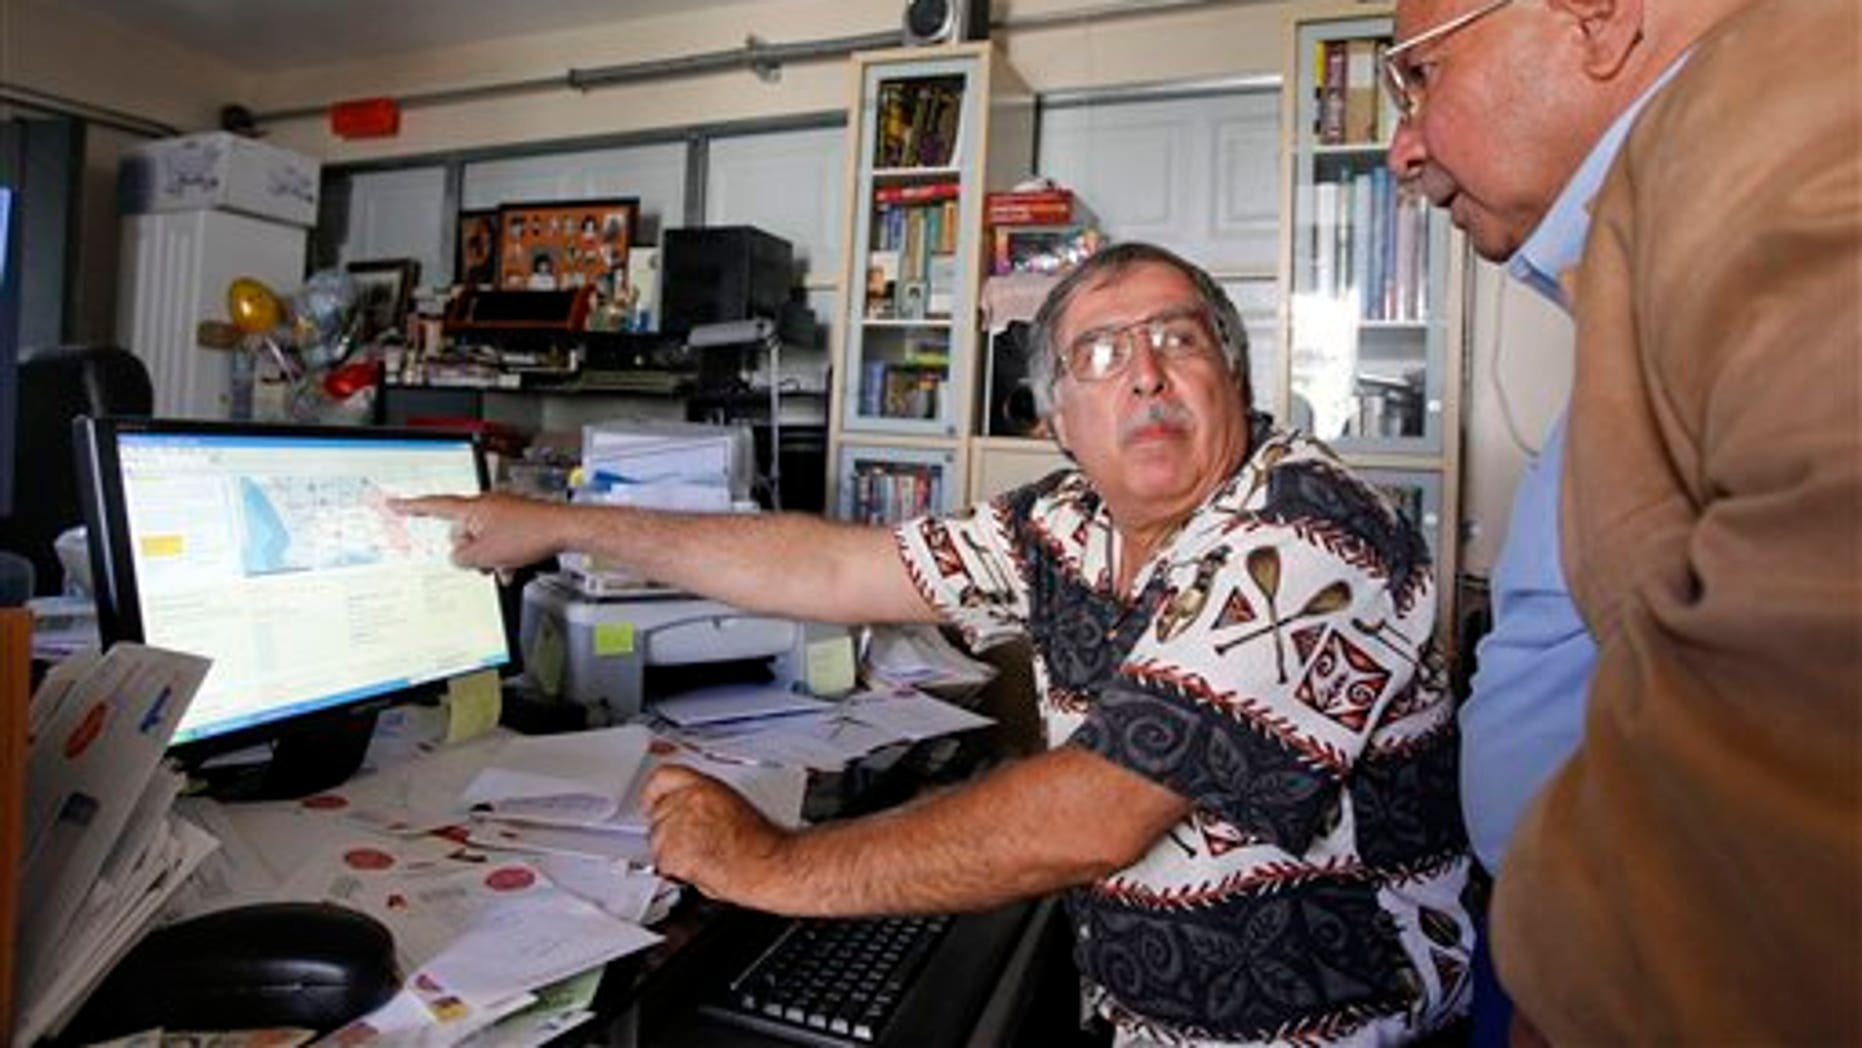 In this June 15, 2011 photo, Art Montez, left, and Reben Treviso look at potential congressional redistricting maps on Montez's home computer, in Buena Park, Calif.  The debate over redistricting proposals by the independent commission will escalate in the coming weeks, as the panel takes public comment and wrestles with revisions before voting on a final version Aug. 15.   (AP Photo/Chris Carlson)